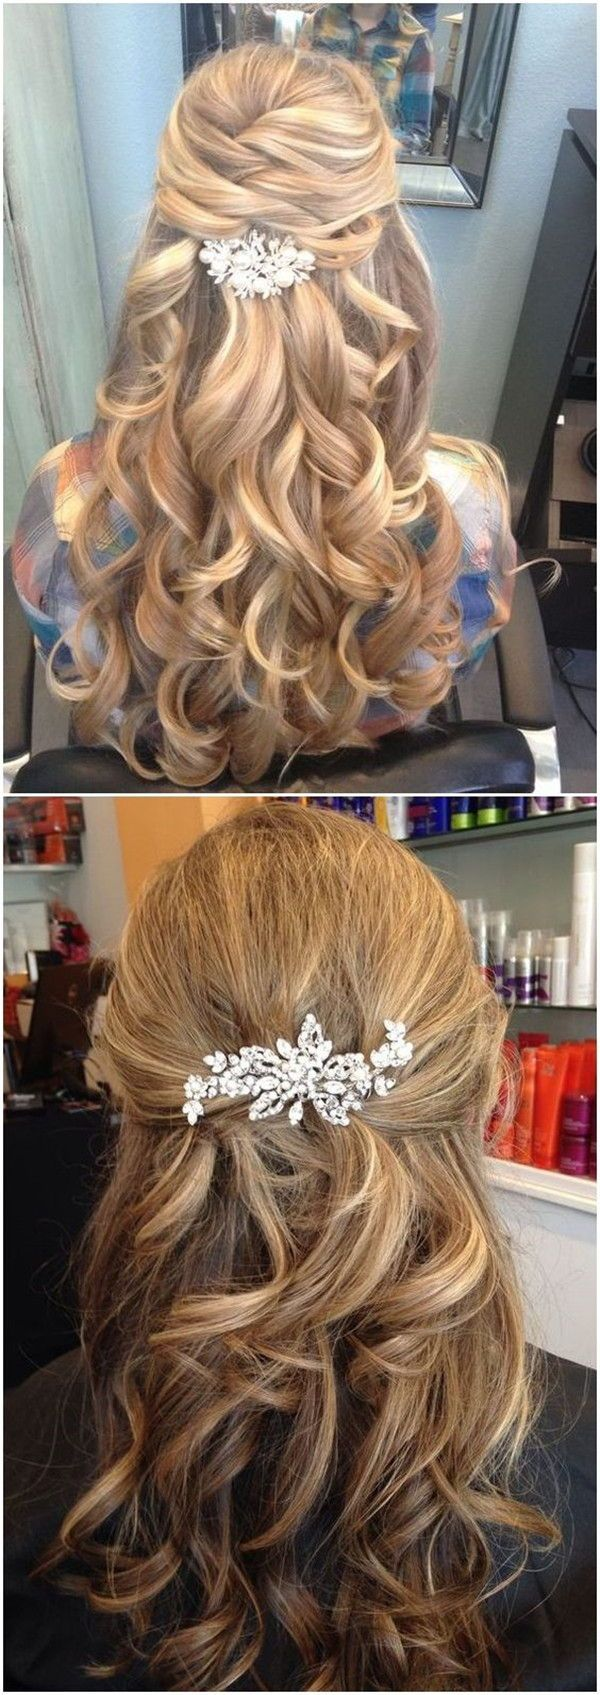 Attractive Wedding Hairstyles for Long Hair Rustic weddings